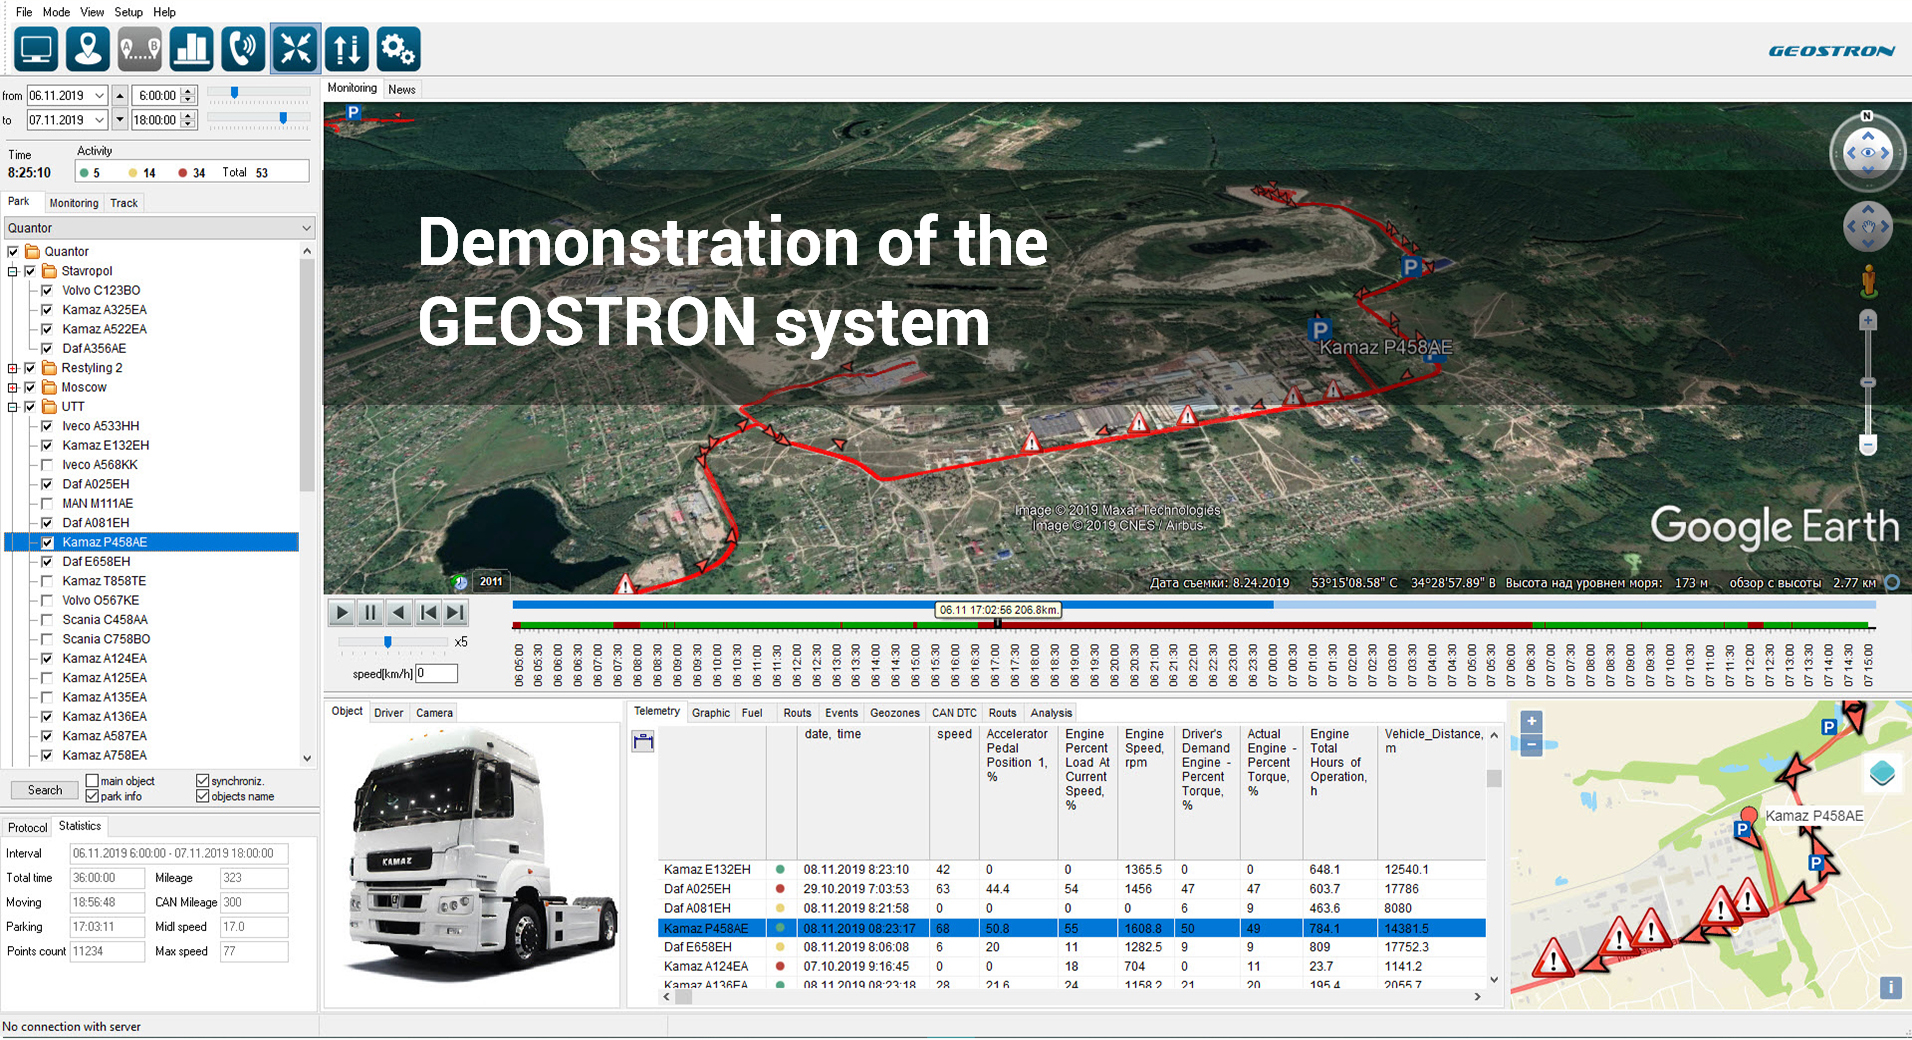 Demonstration of the GEOSTRON system